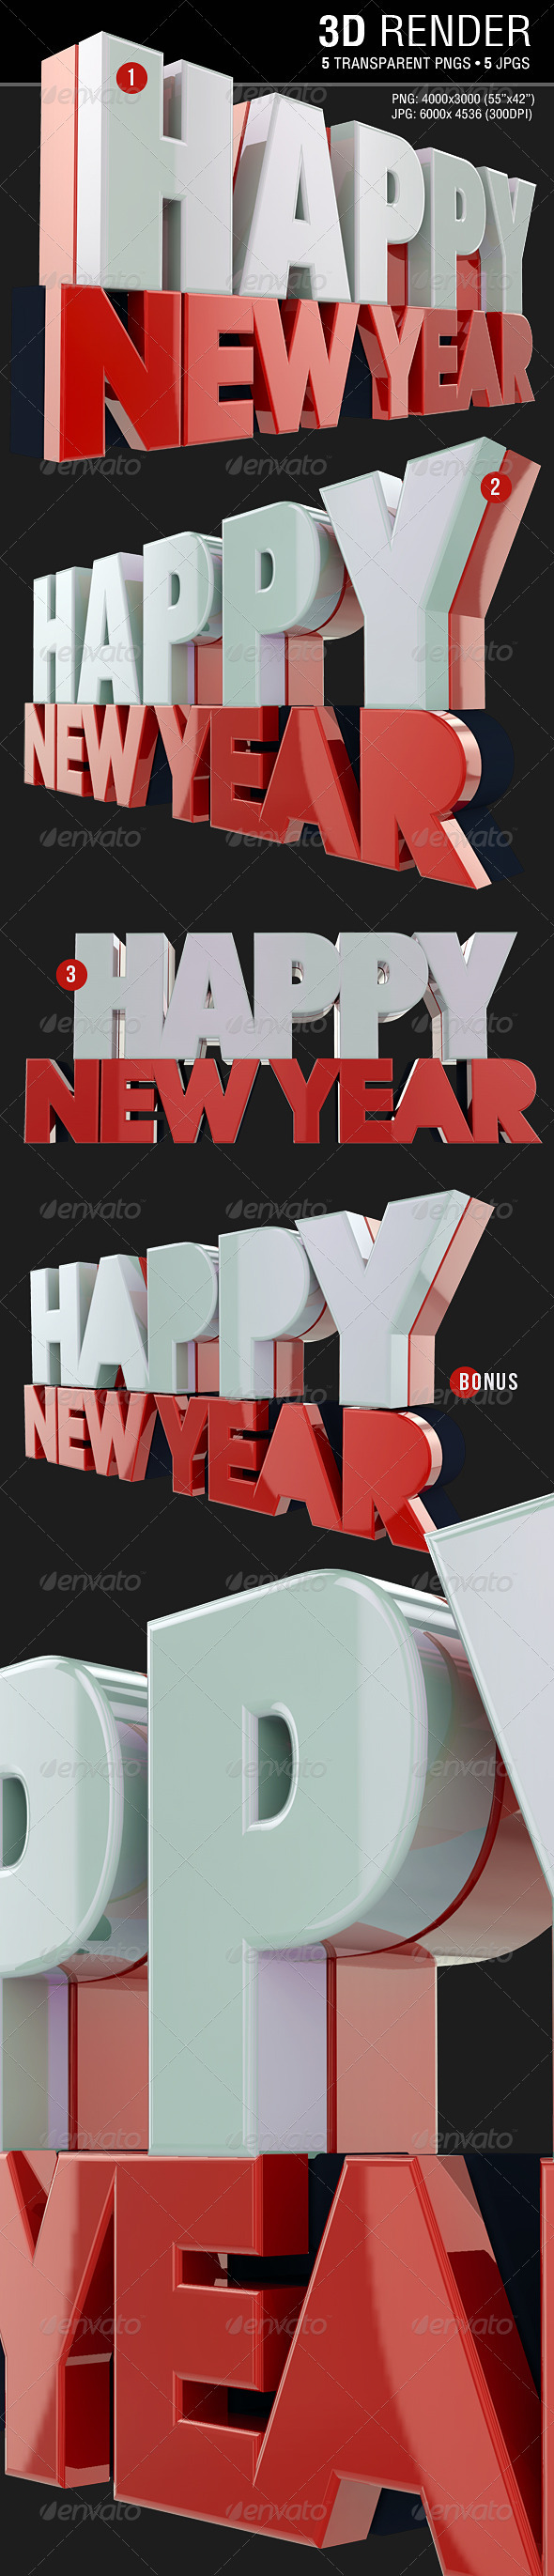 GraphicRiver Happy New Year 3D Render 3574038